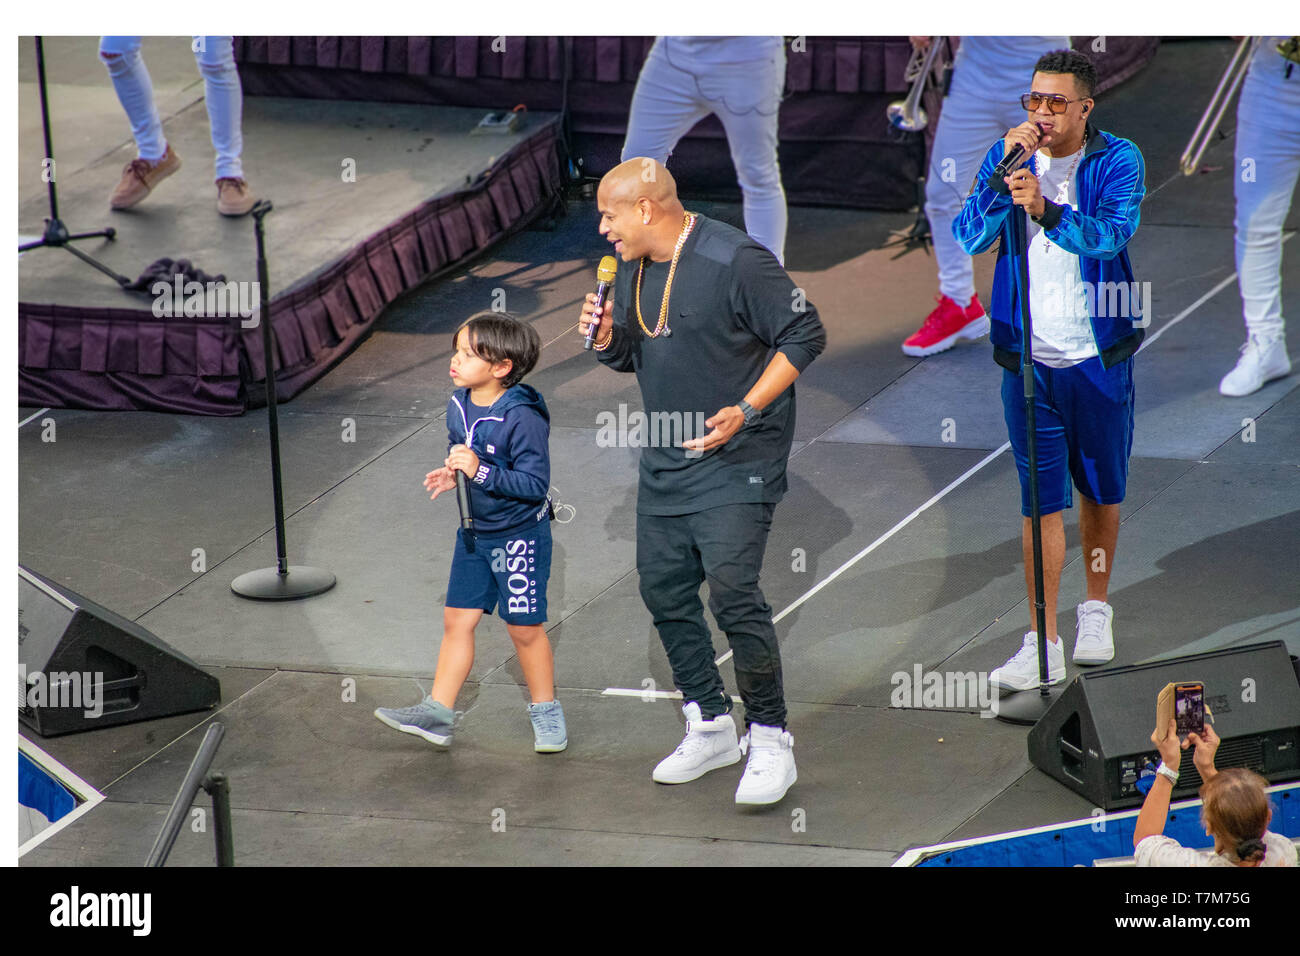 Orlando, Florida. March 17, 2019. Randy Malcom and Alexander Delgado by Gente de Zona singing urban music at Seaworld  in International Drive Area  (1 Stock Photo